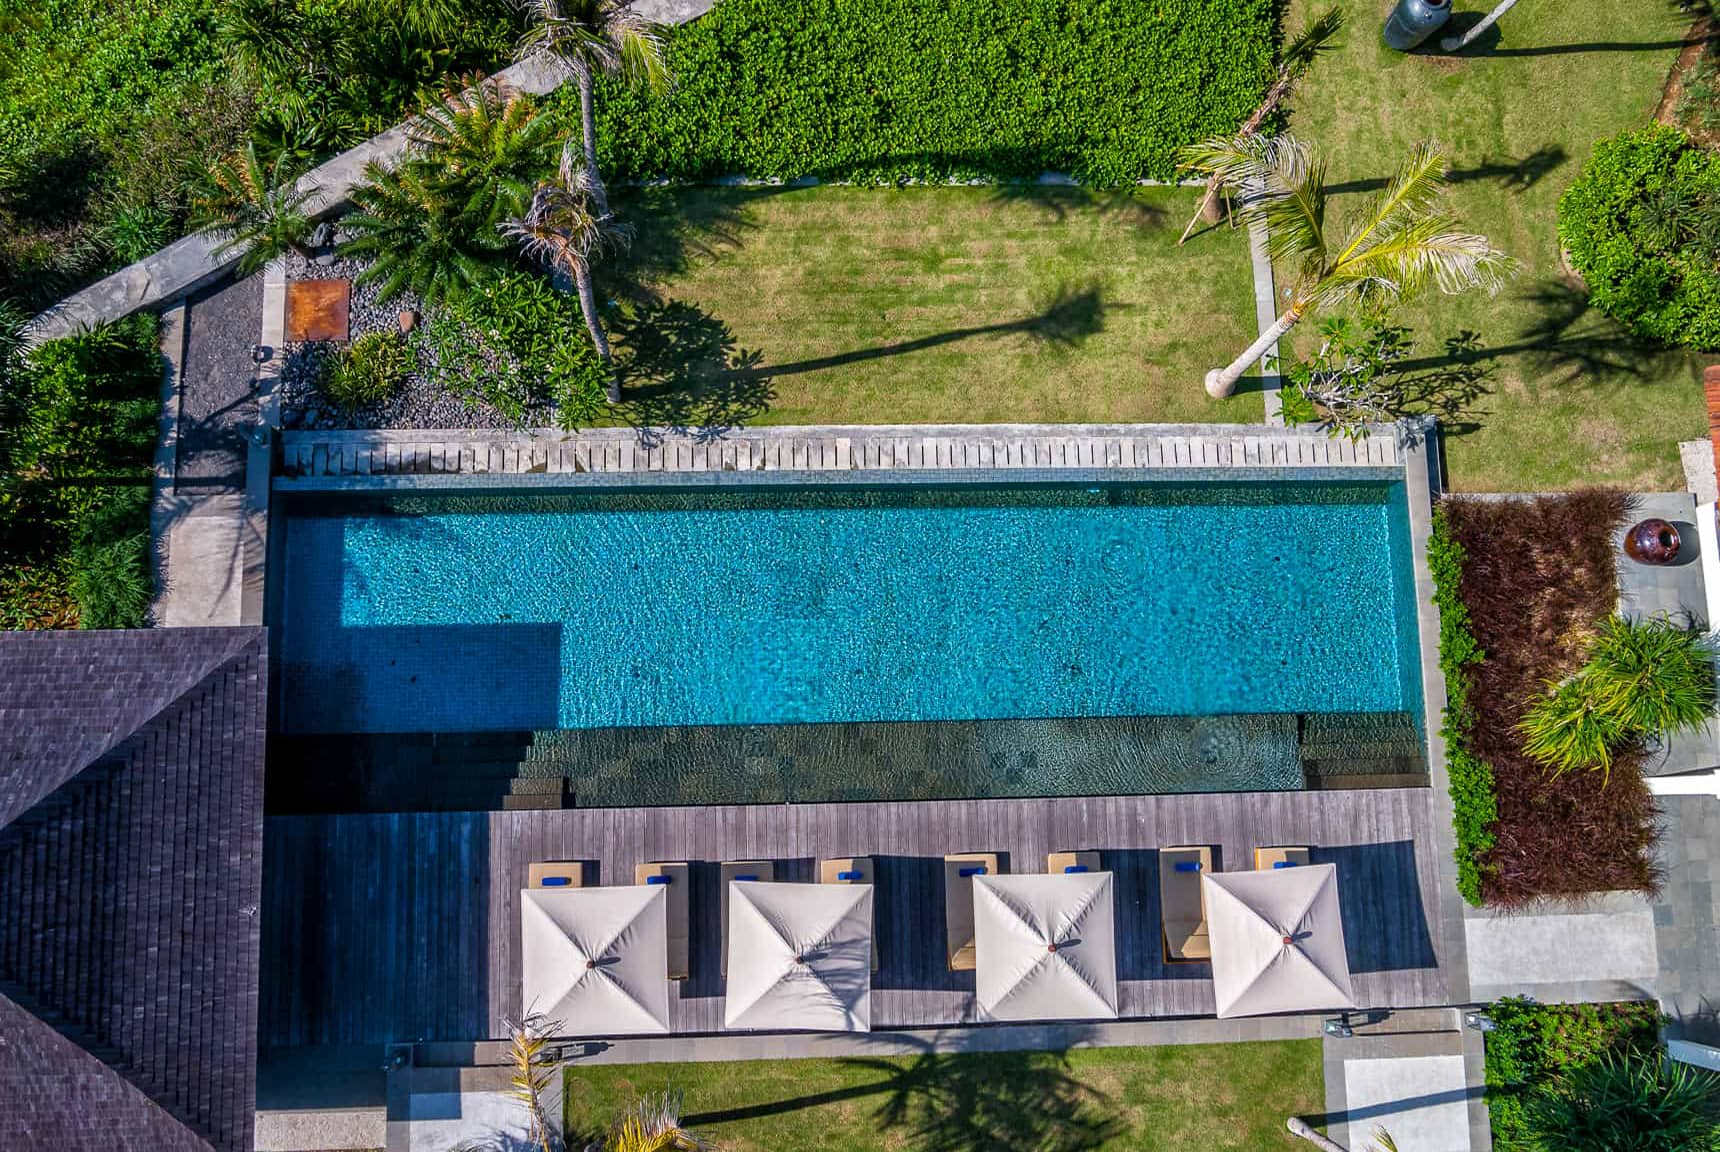 Pool, gardens, beach, and main property layout views